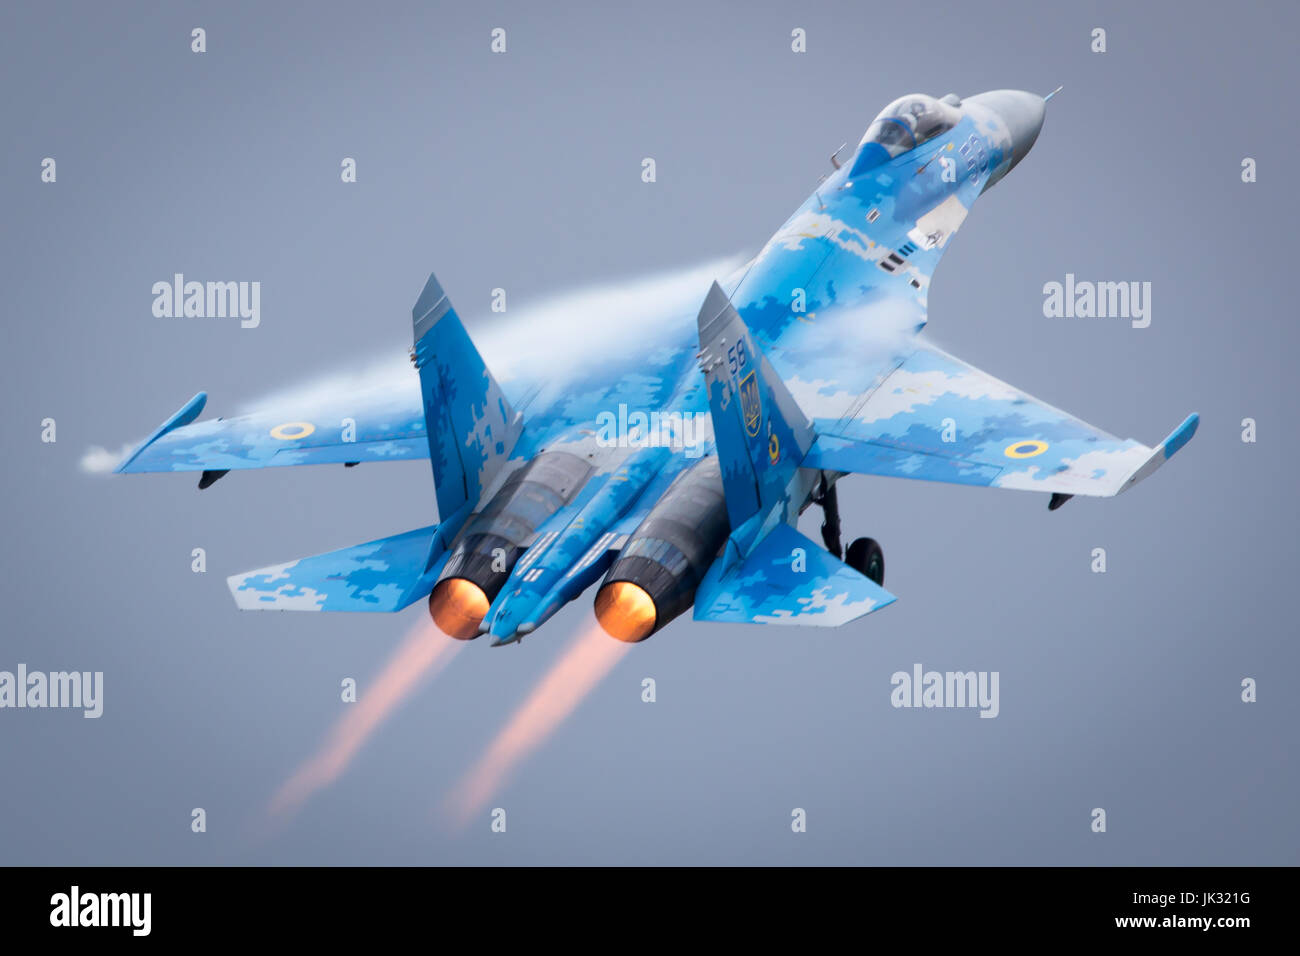 Ex-Russian Soviet Cold War Ukrainian Sukhoi SU-27 Flanker Displays at the Fairford International Air Tattoo 2017 - Stock Image